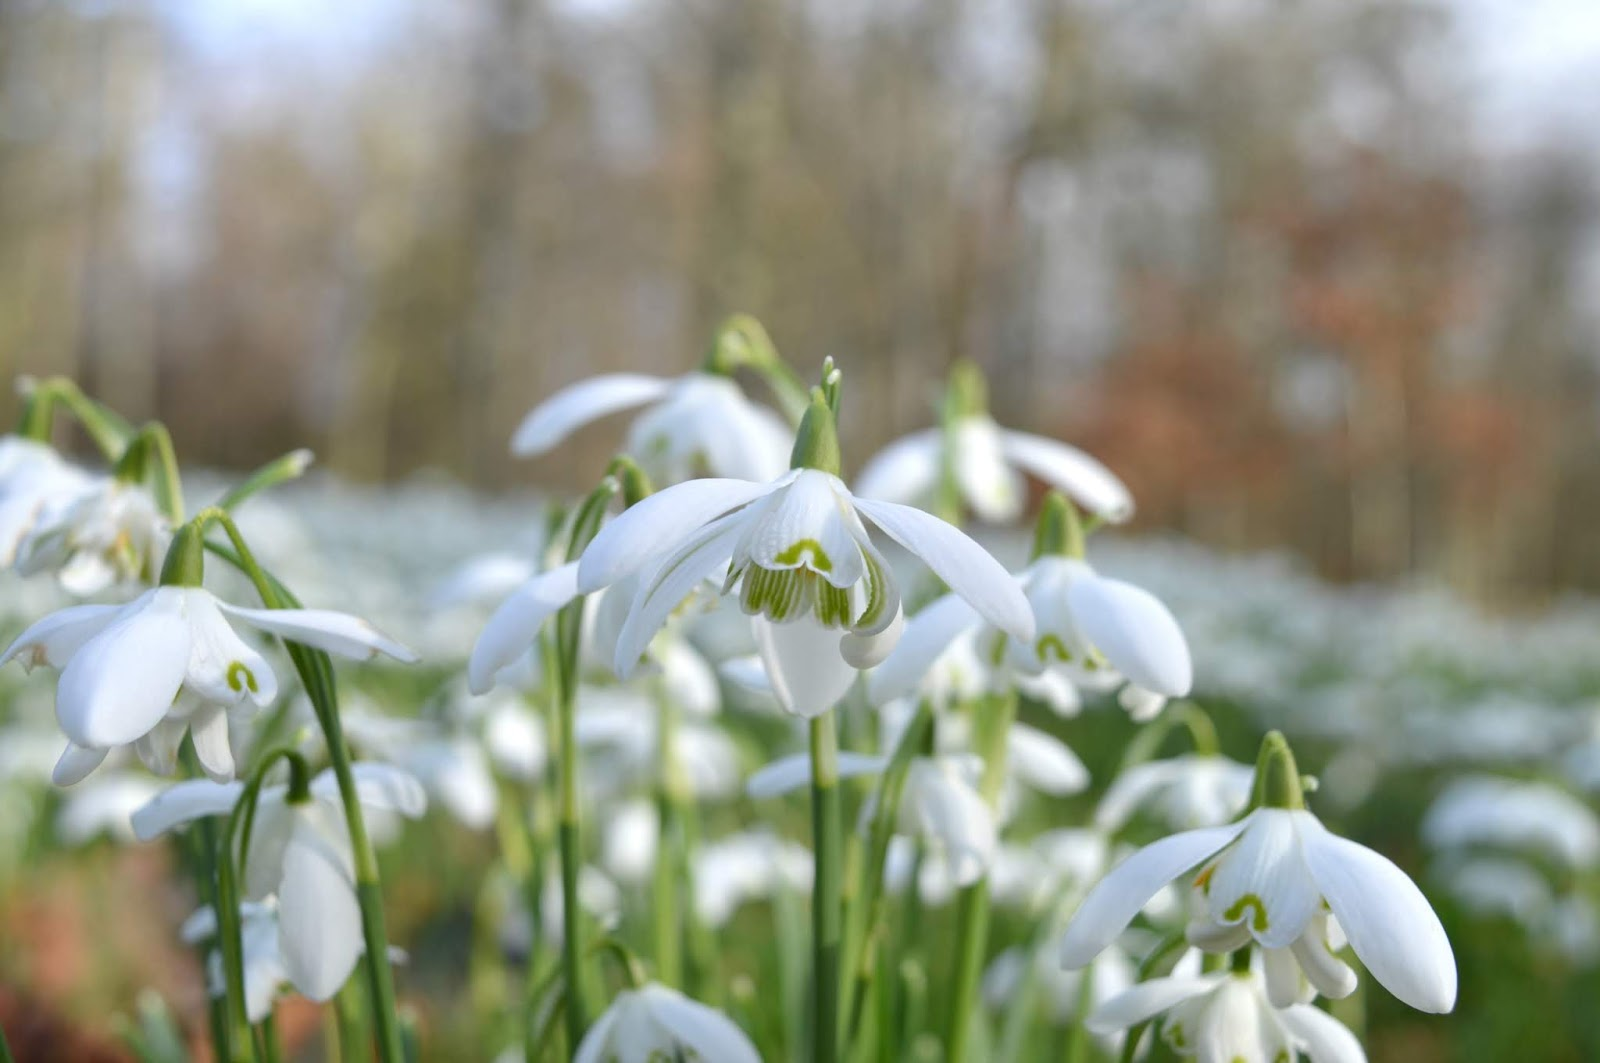 North East Flowers - Snowdrops